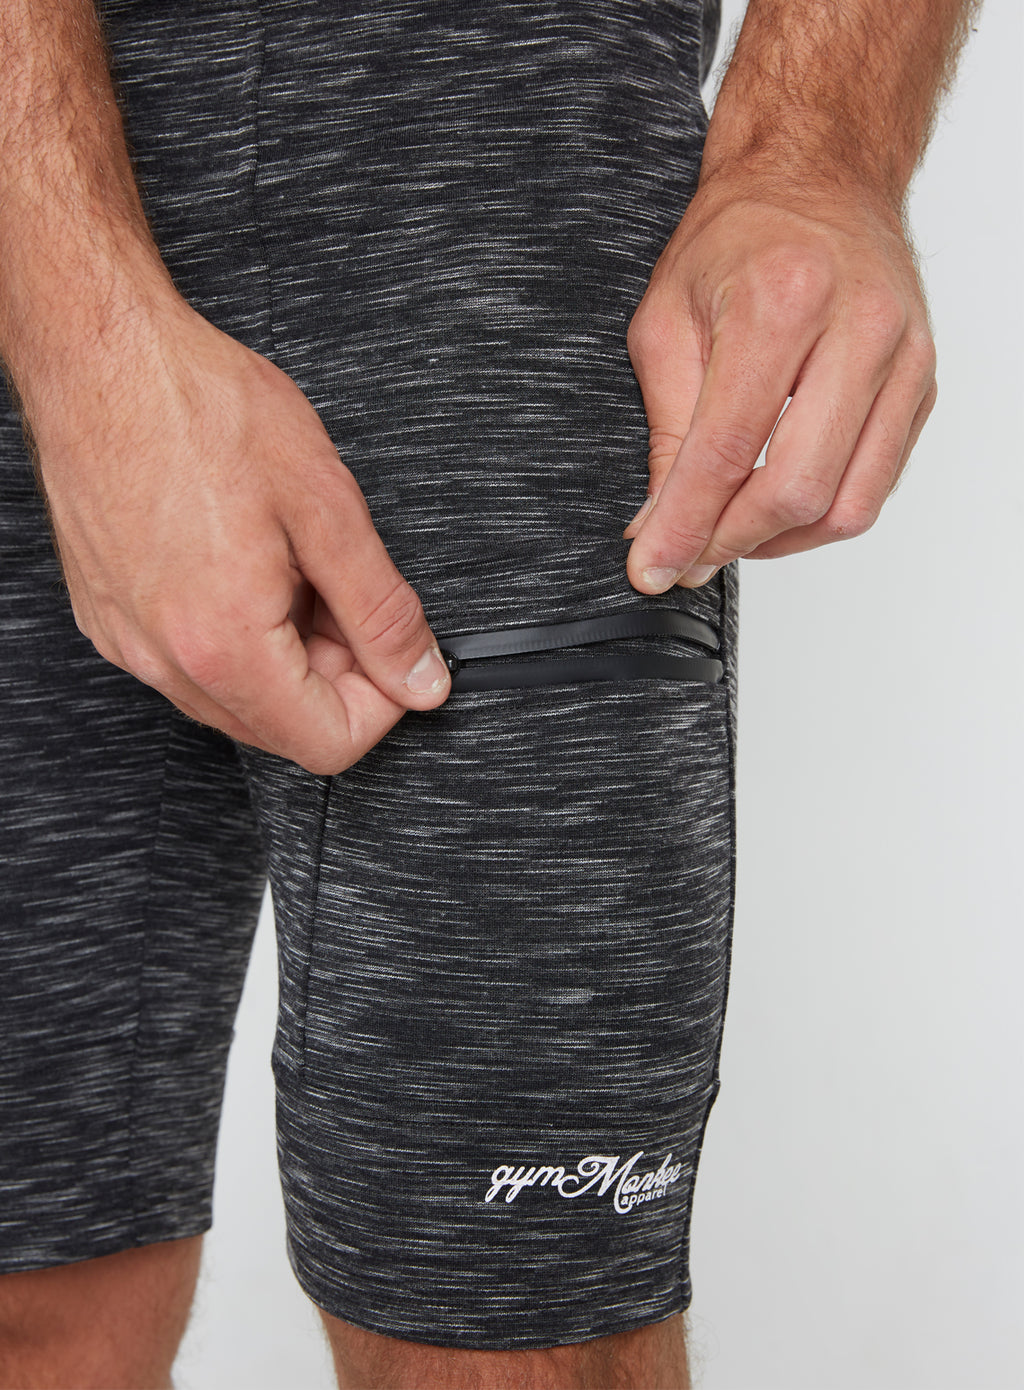 Gym Monkee - Black Striped Shorts ZIPPED POCKETS